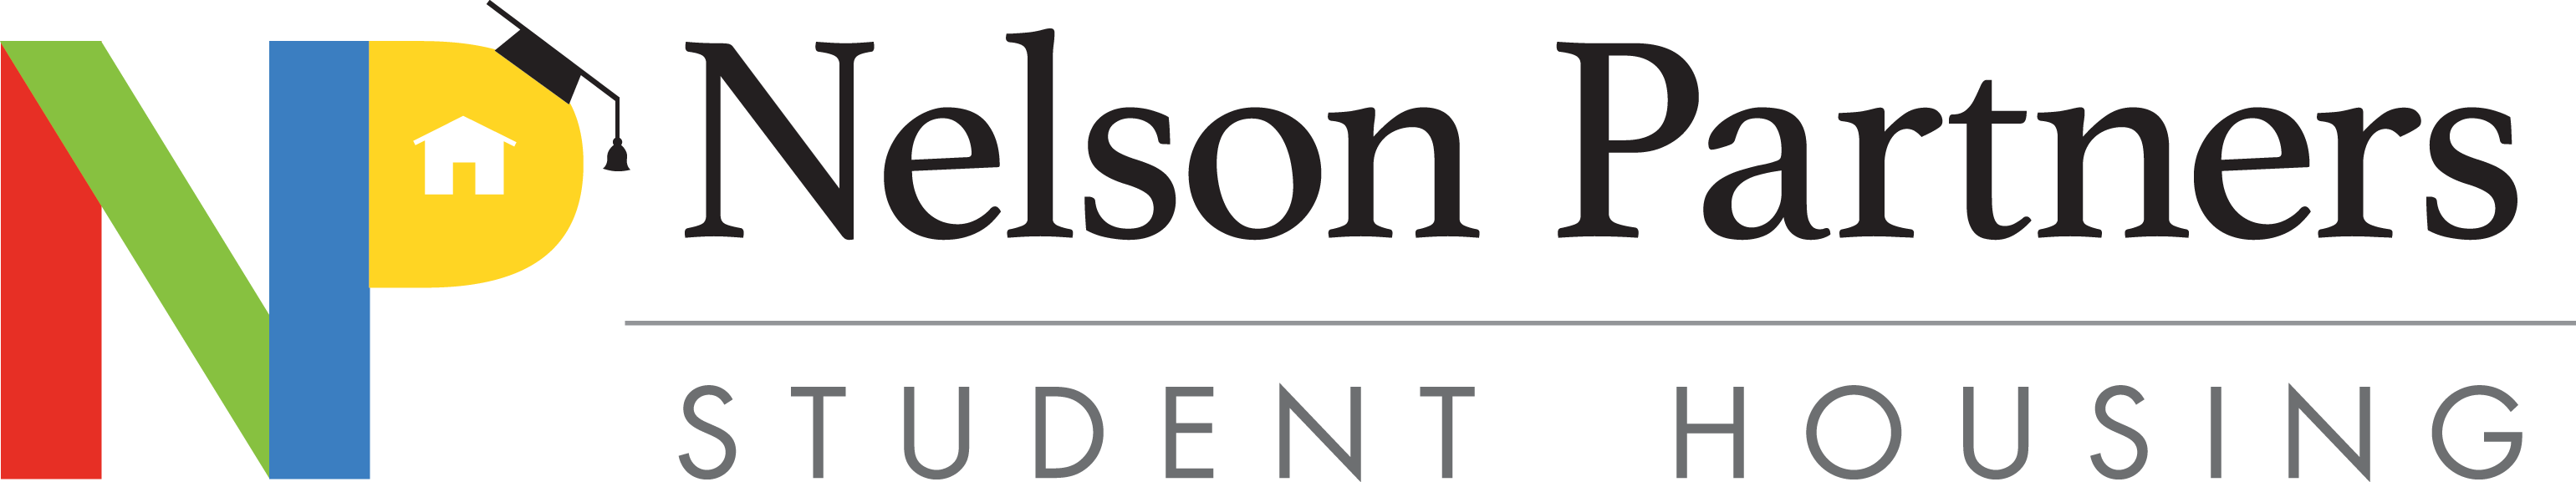 Nelson Partners Student Housing - Develop. Acquire. Invest.